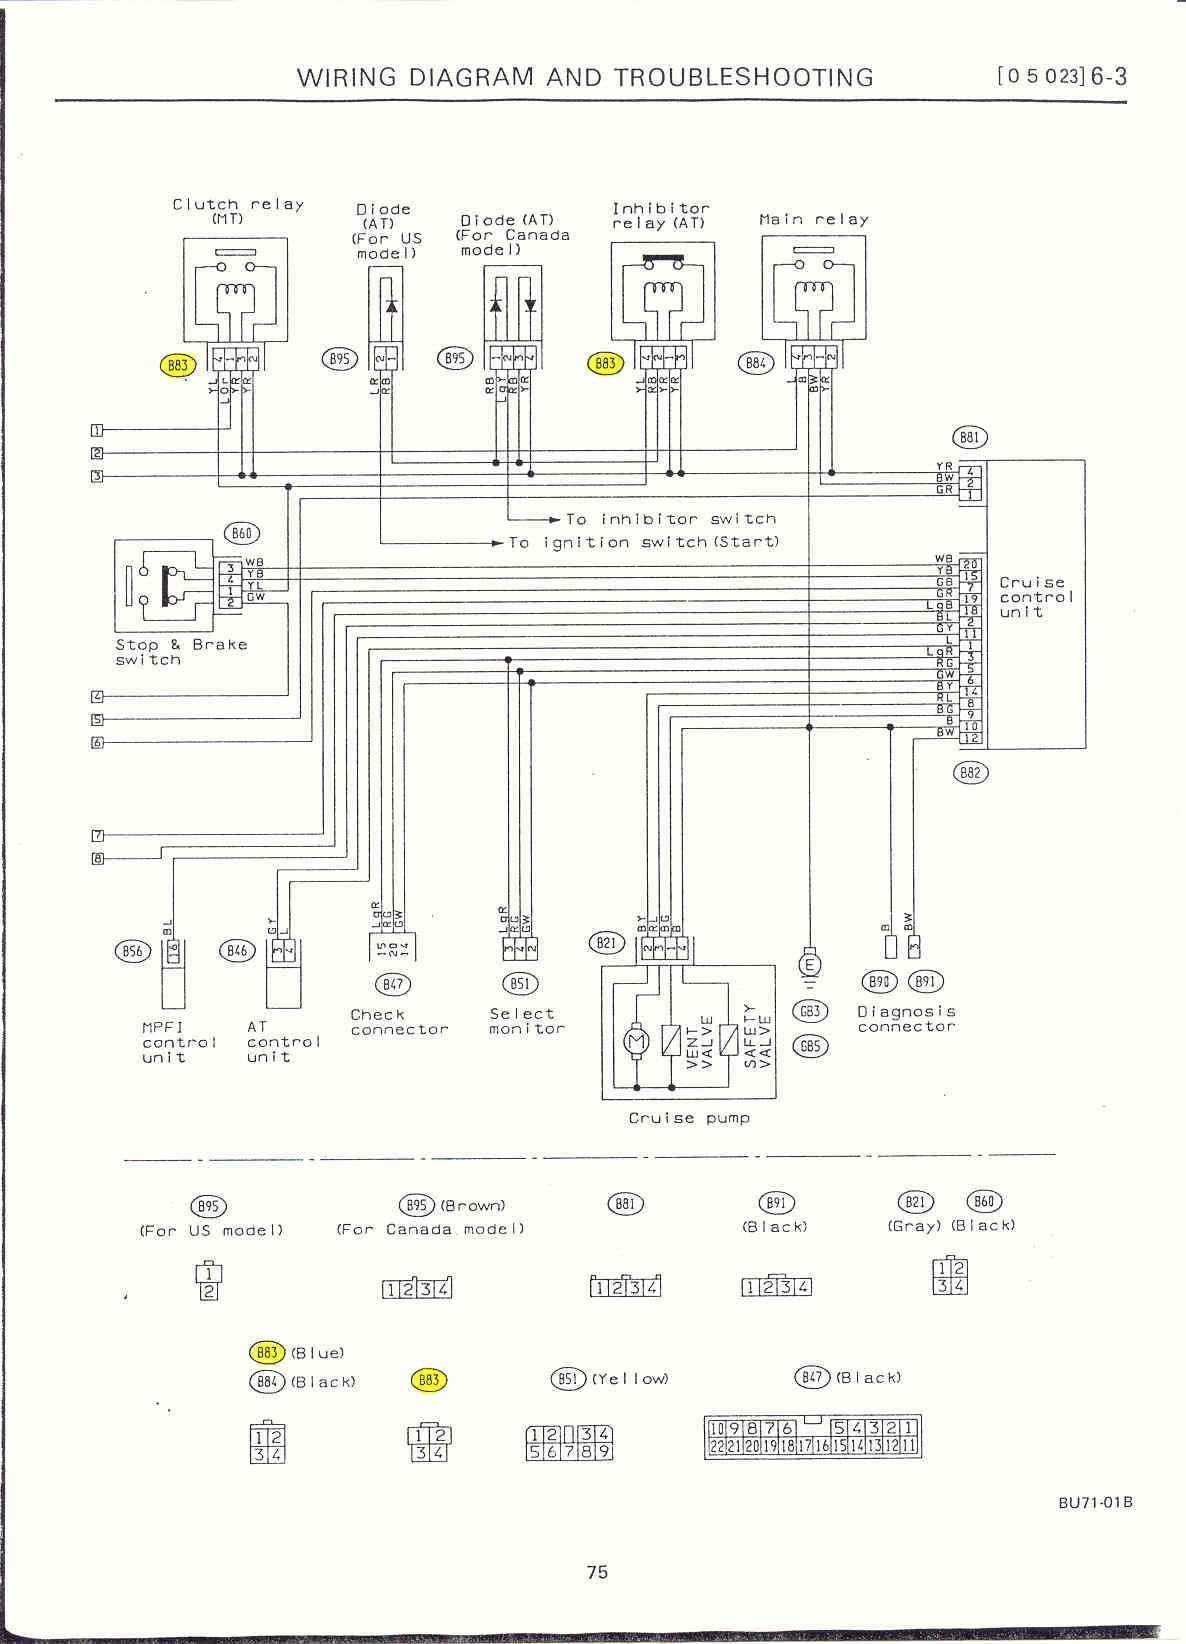 hight resolution of 1999 plymouth breeze wiring diagram wiring diagram 1996 plymouth breeze wiring harness diagram database reg mix